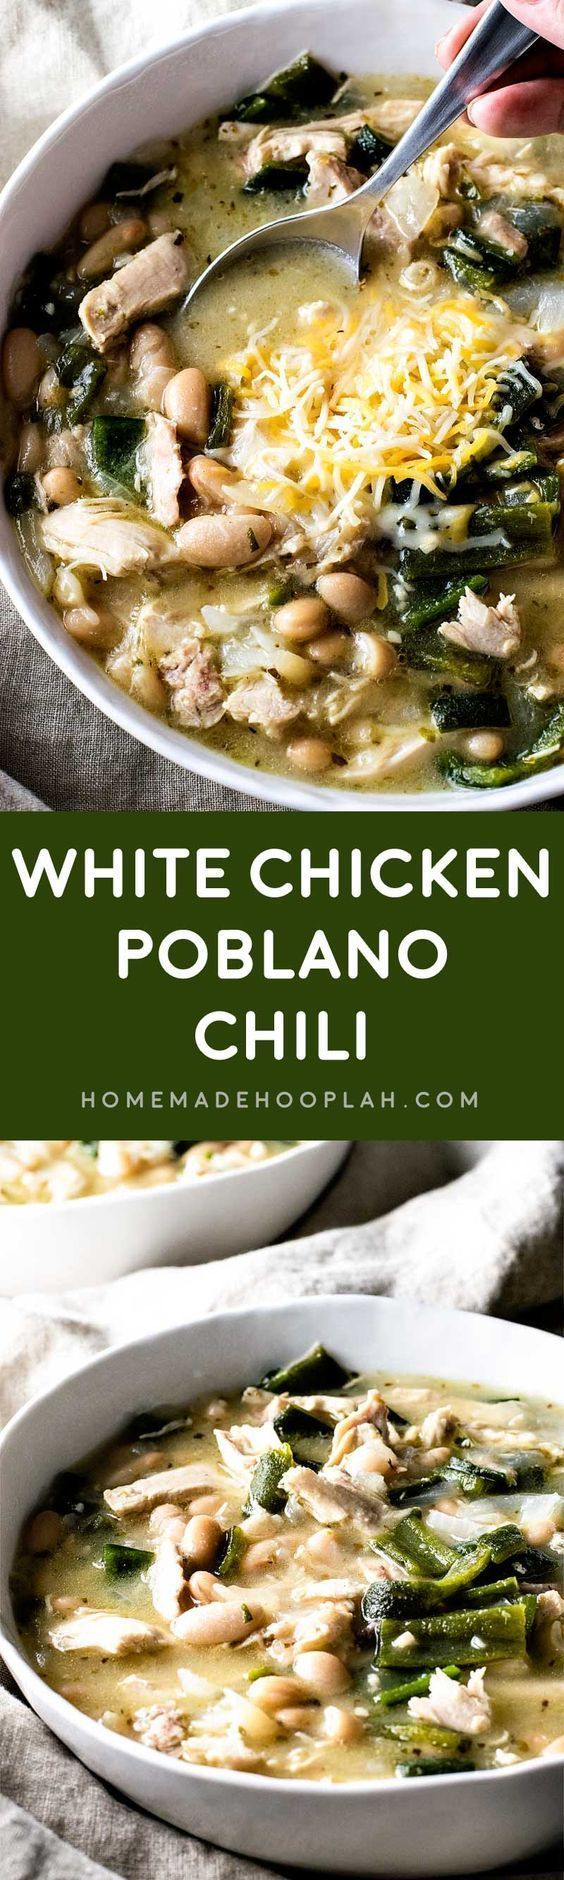 White Chicken Poblano Chili - Boiled whole chicken, homemade chicken broth, tender chiles, and flavorful cannellini beans make this white chicken poblano chili an at-home favorite!